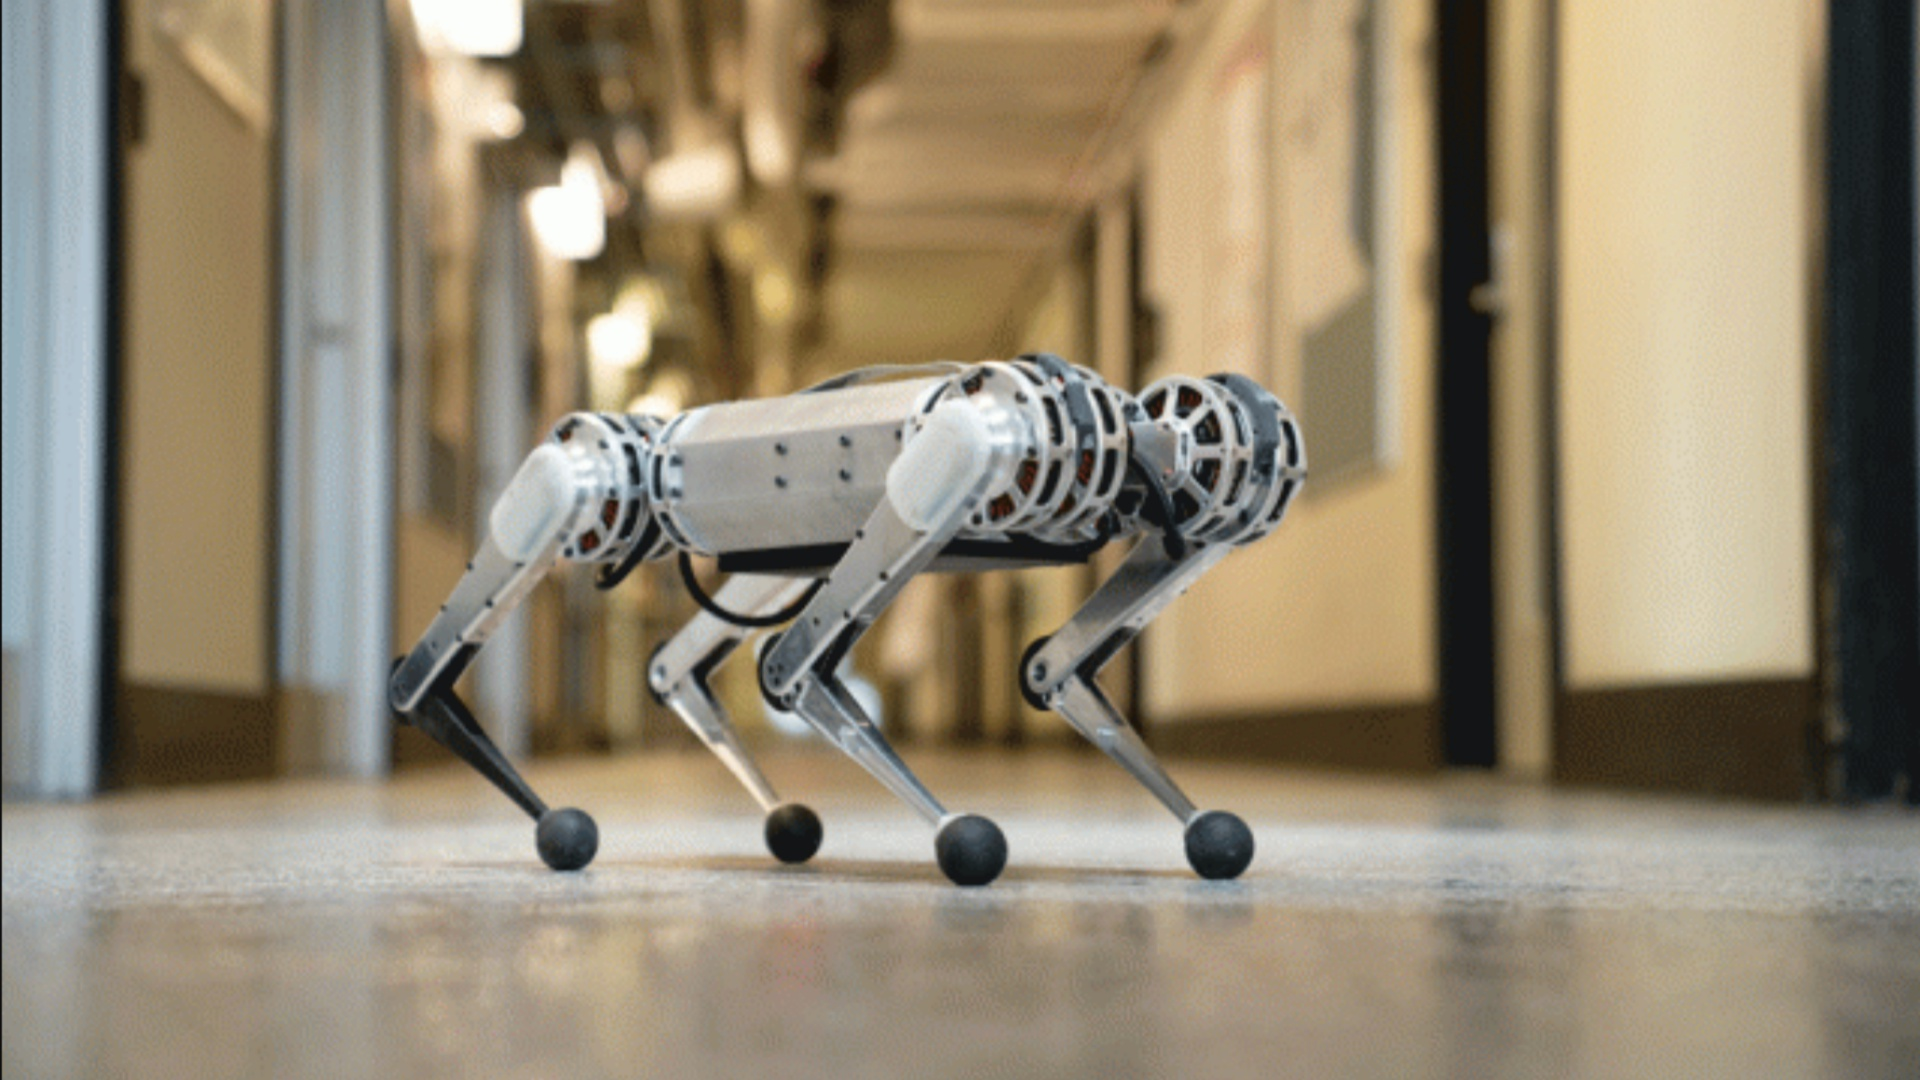 MIT Mini Cheetah Robot Can Jump Backwards And Trot